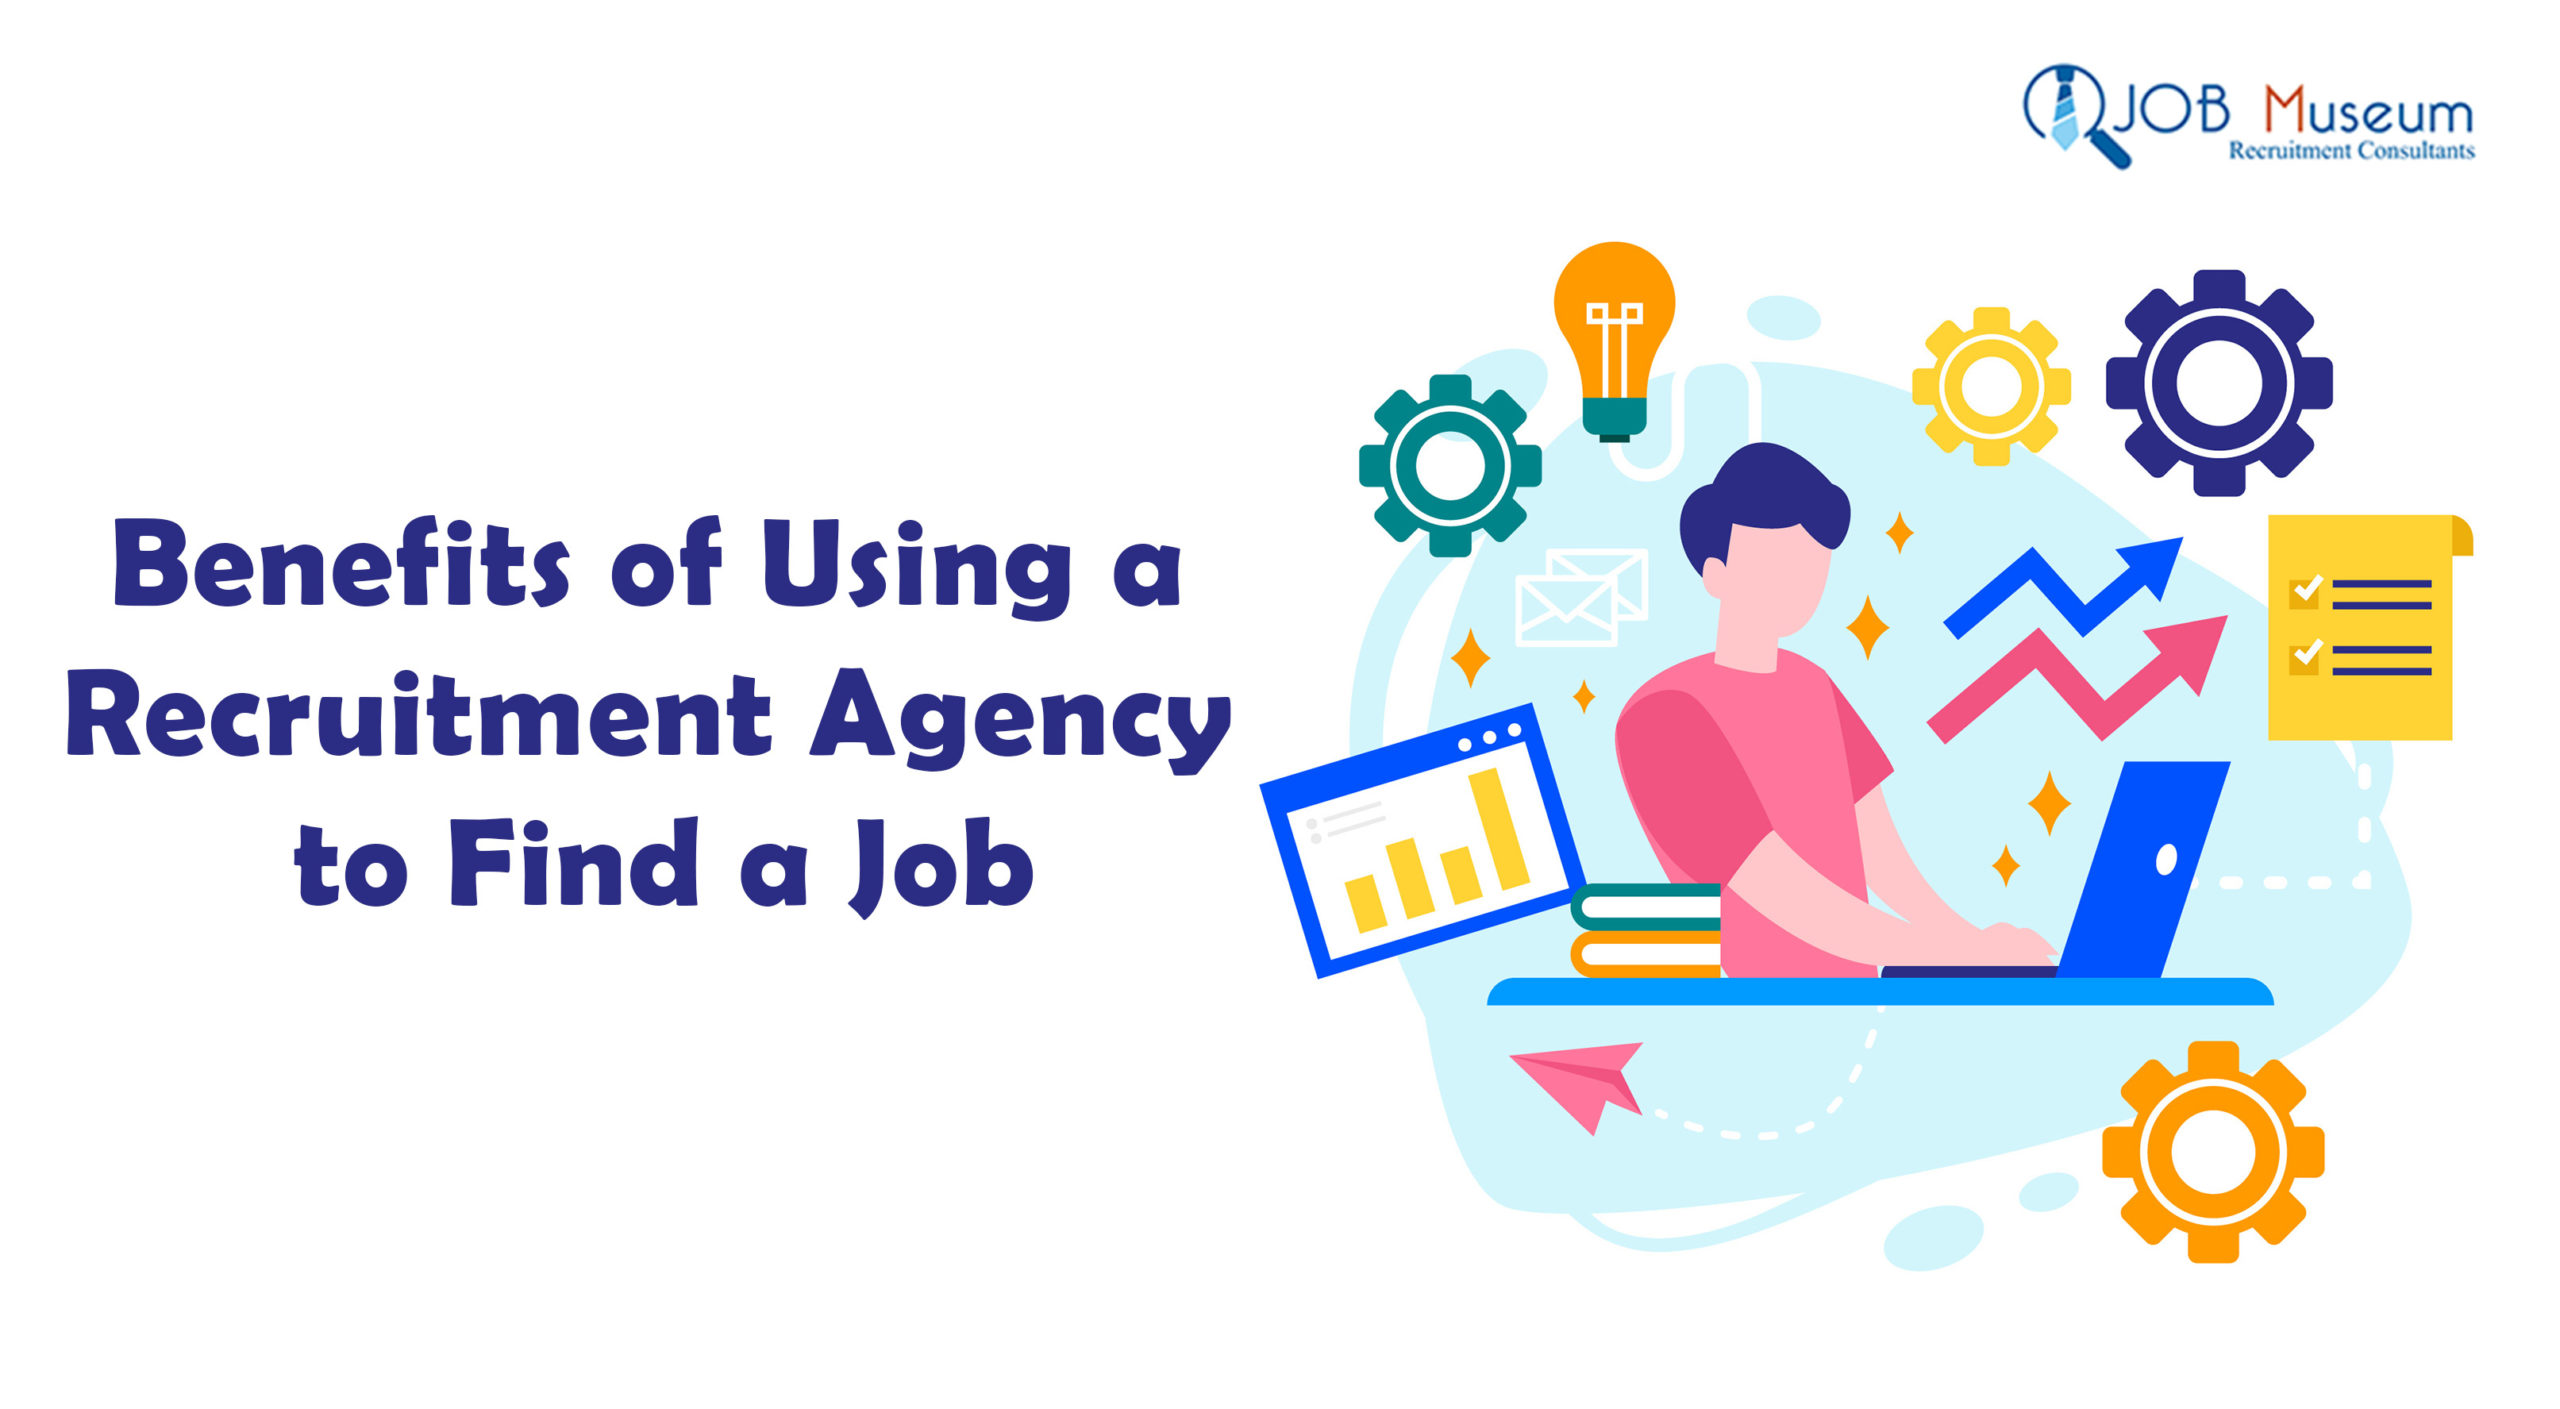 Benefits of Using a Recruitment Agency to Find a Job